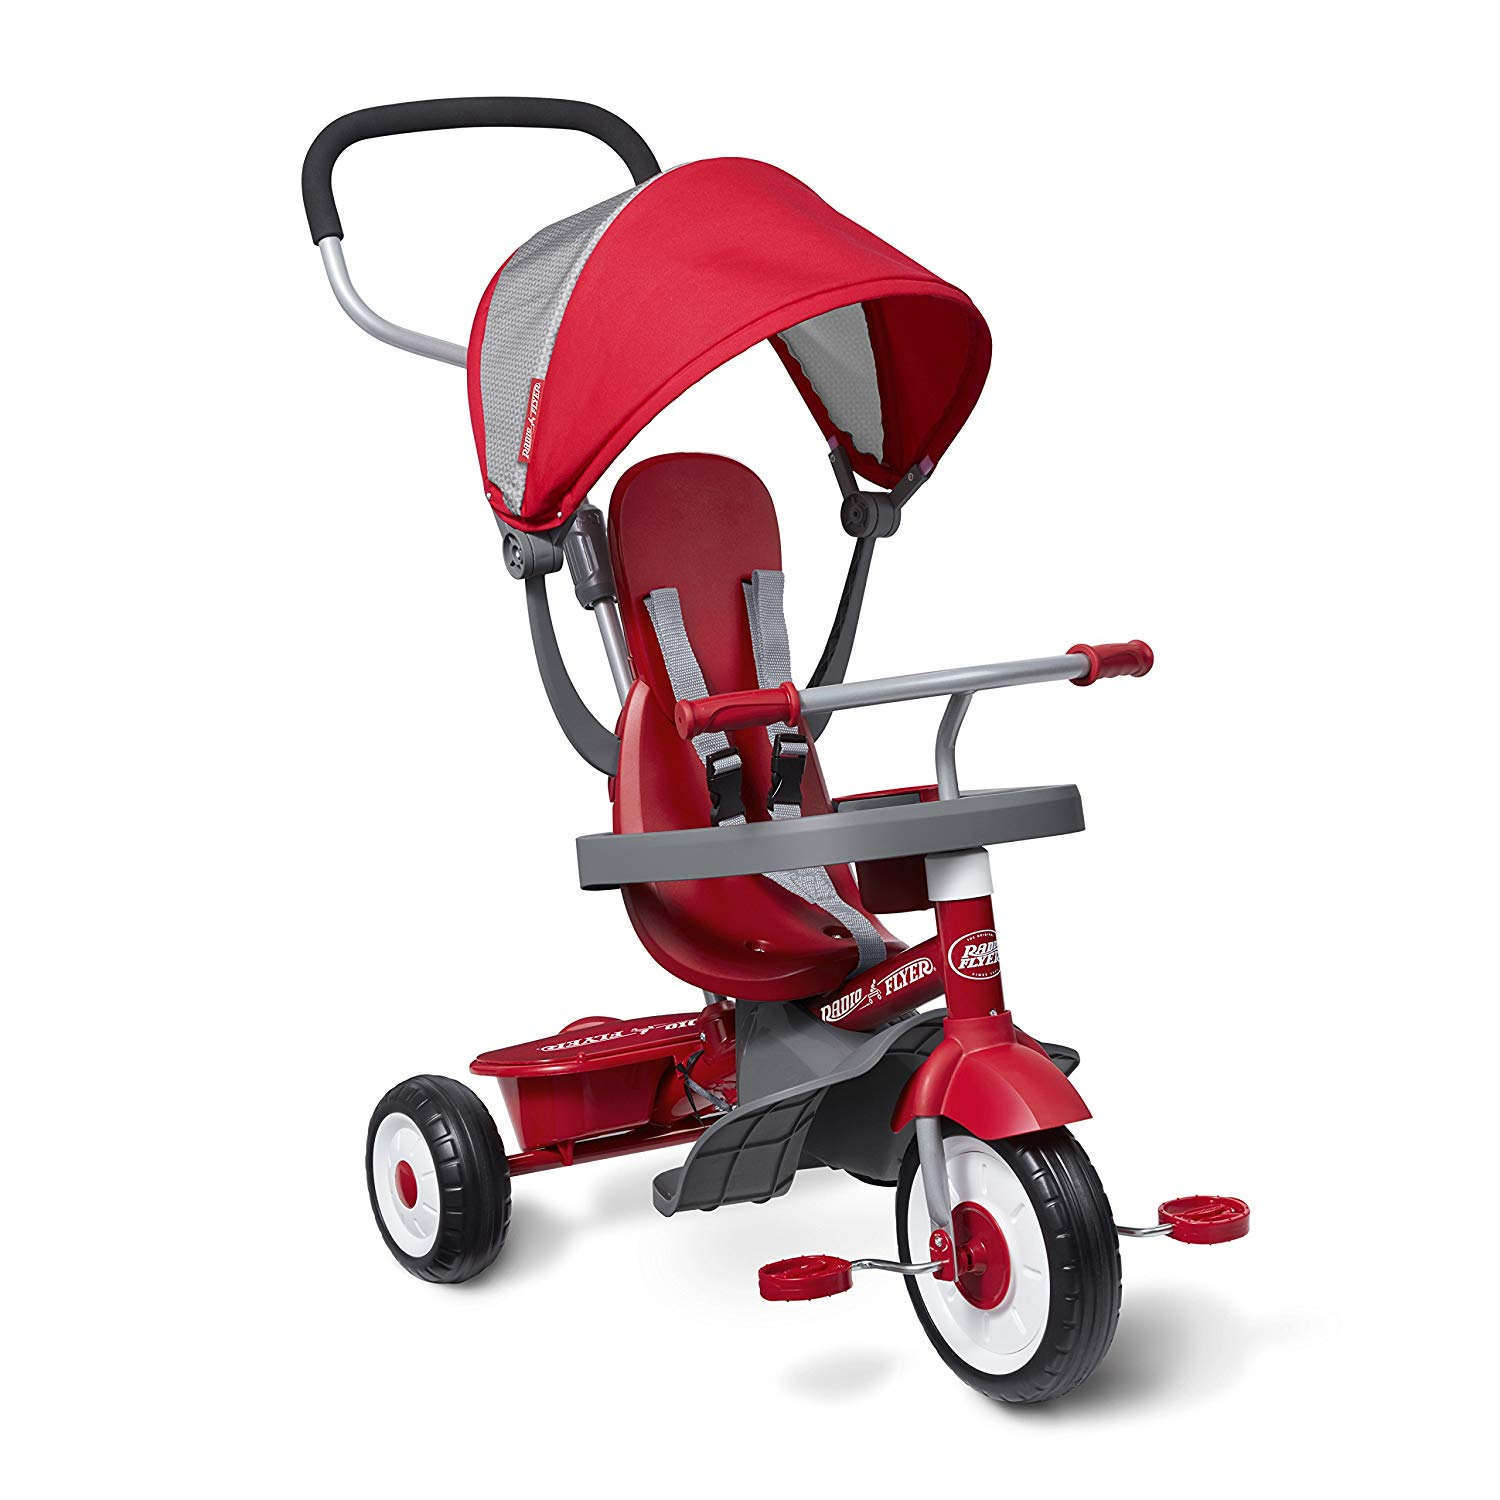 The multi-functional Radio Flyer 4 In 1 Stroll N Trike